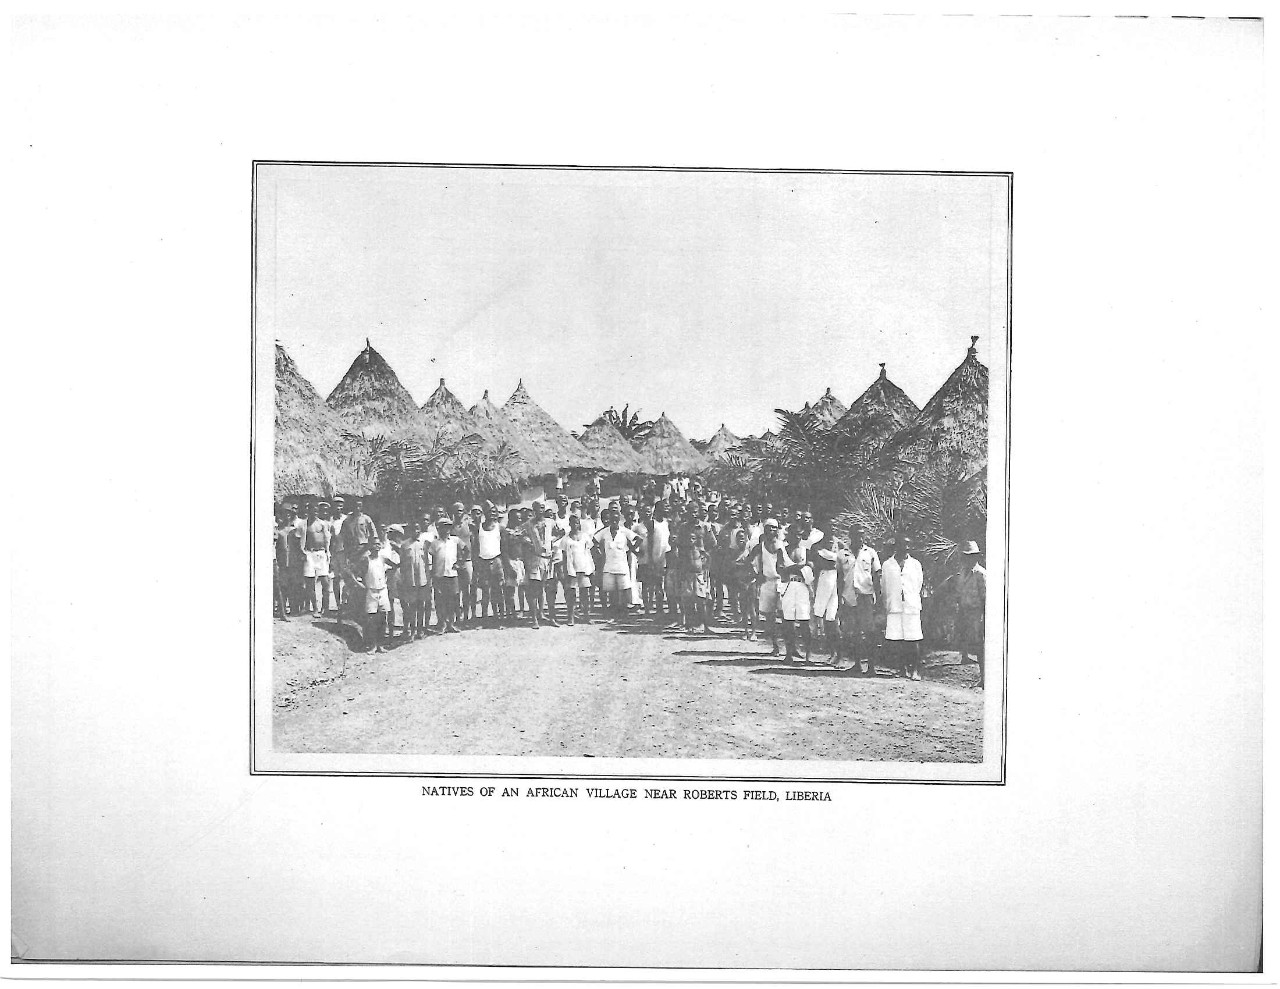 Natives of an African village near Roberts Field, Liberia